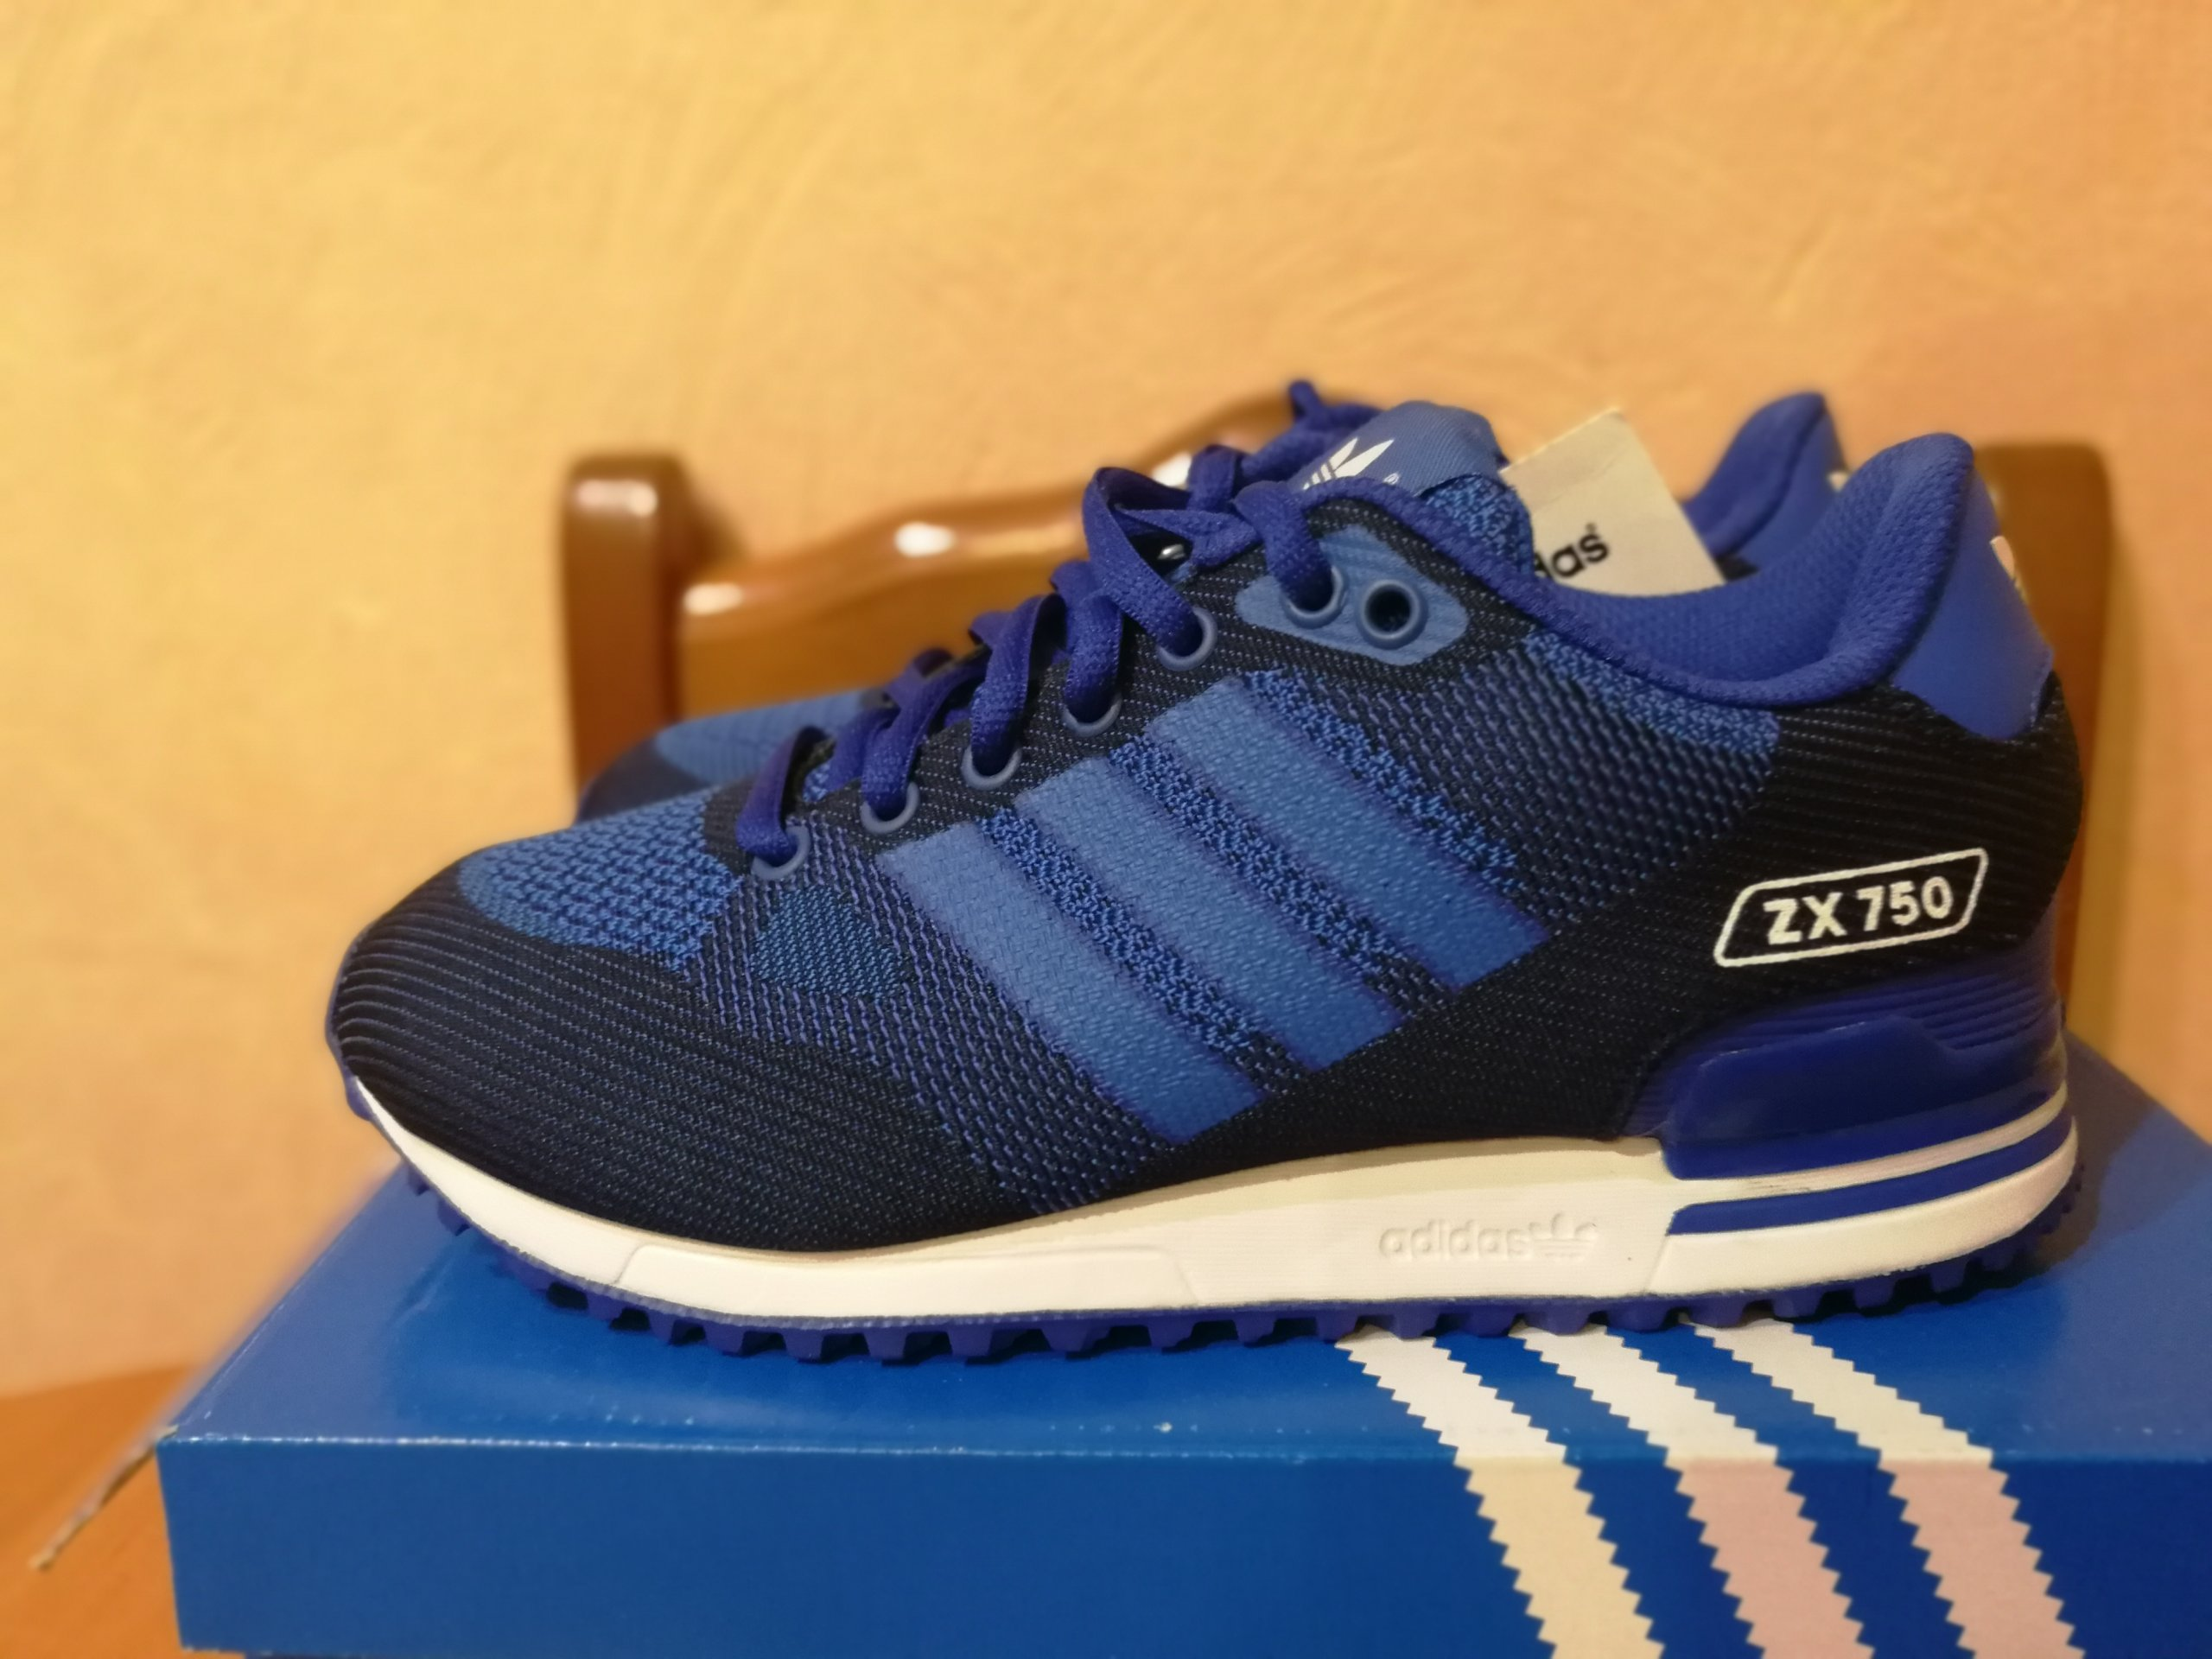 98aa69476be56 ... classic men women running shoes sneakers by9274 uk 7.5 f87c4 7b208  new  style nowe adidas zx750 woven 37 23cm niebieski flux nmd af0e0 b4084